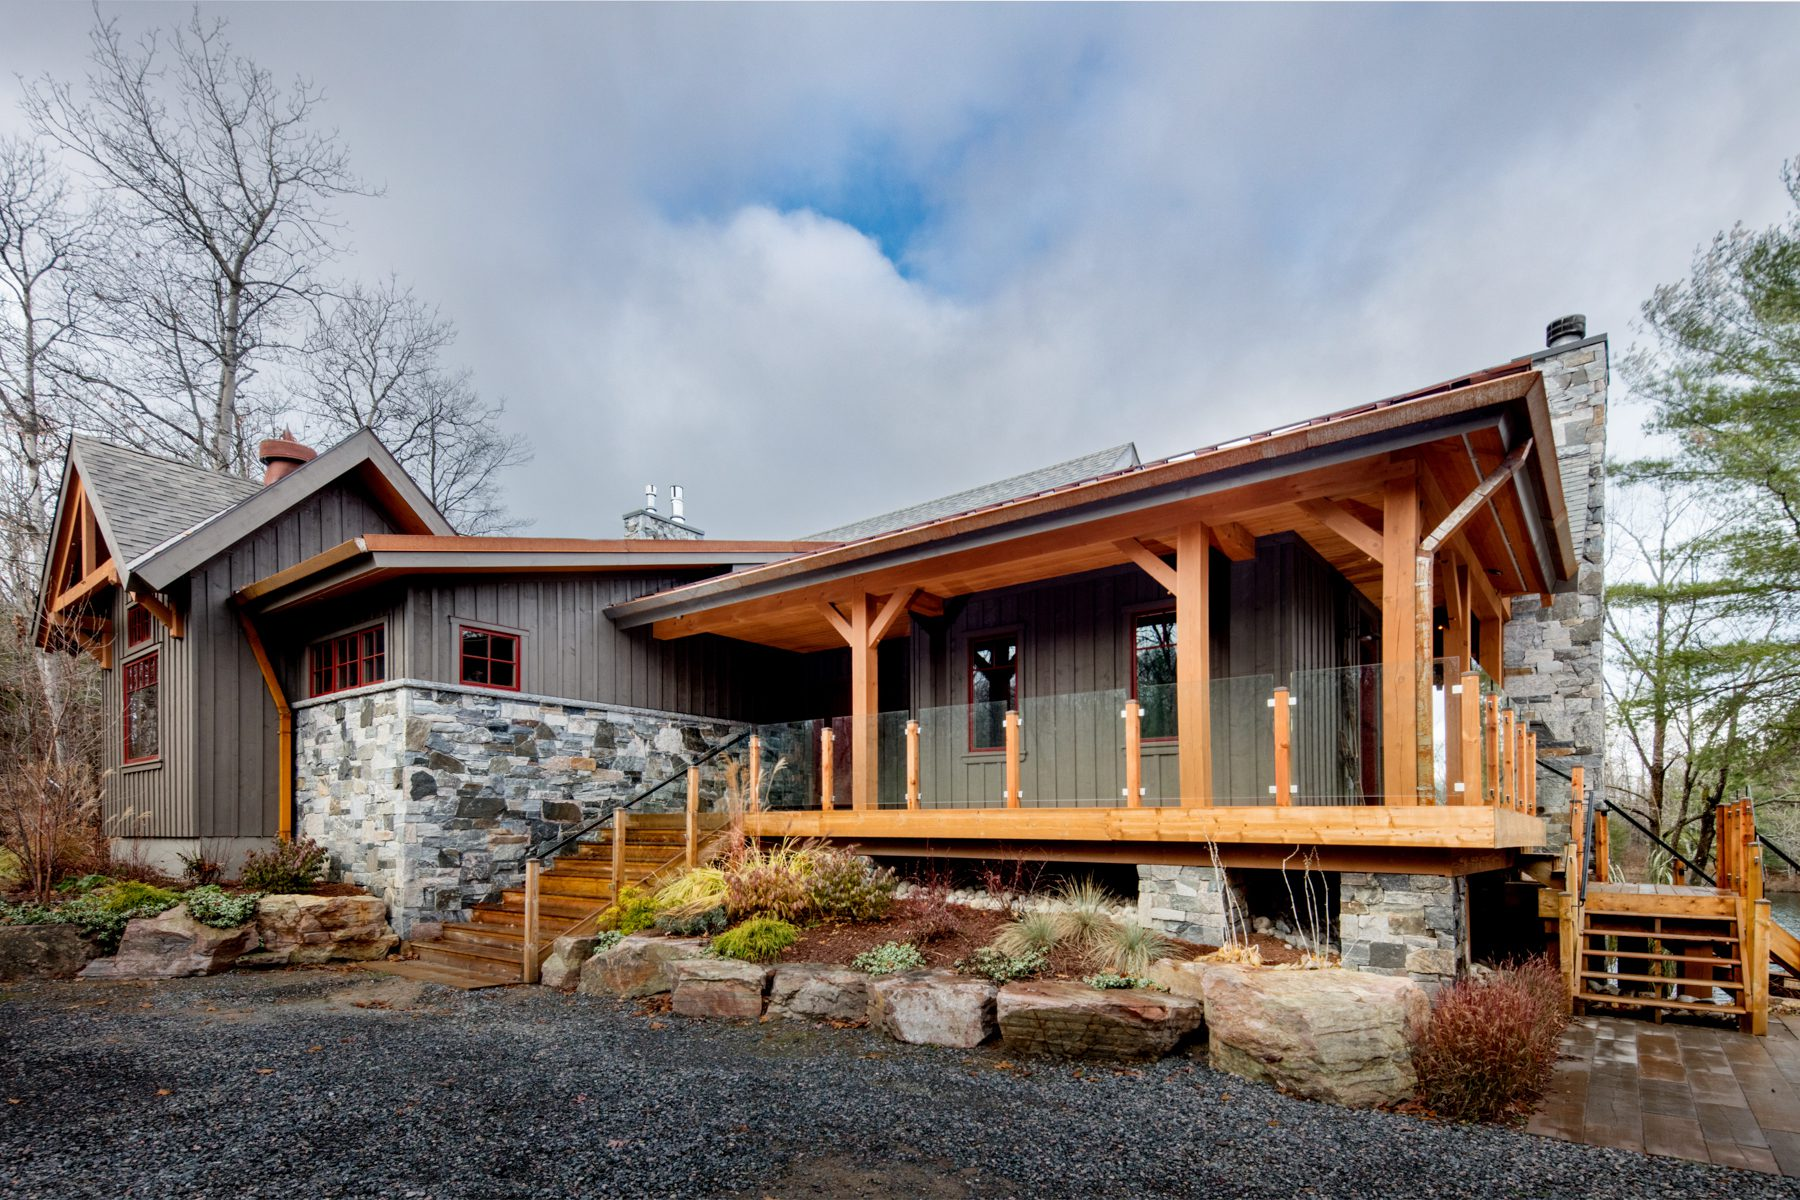 Normerica Timber Frame, Exterior, Cottage, Front View, Porch